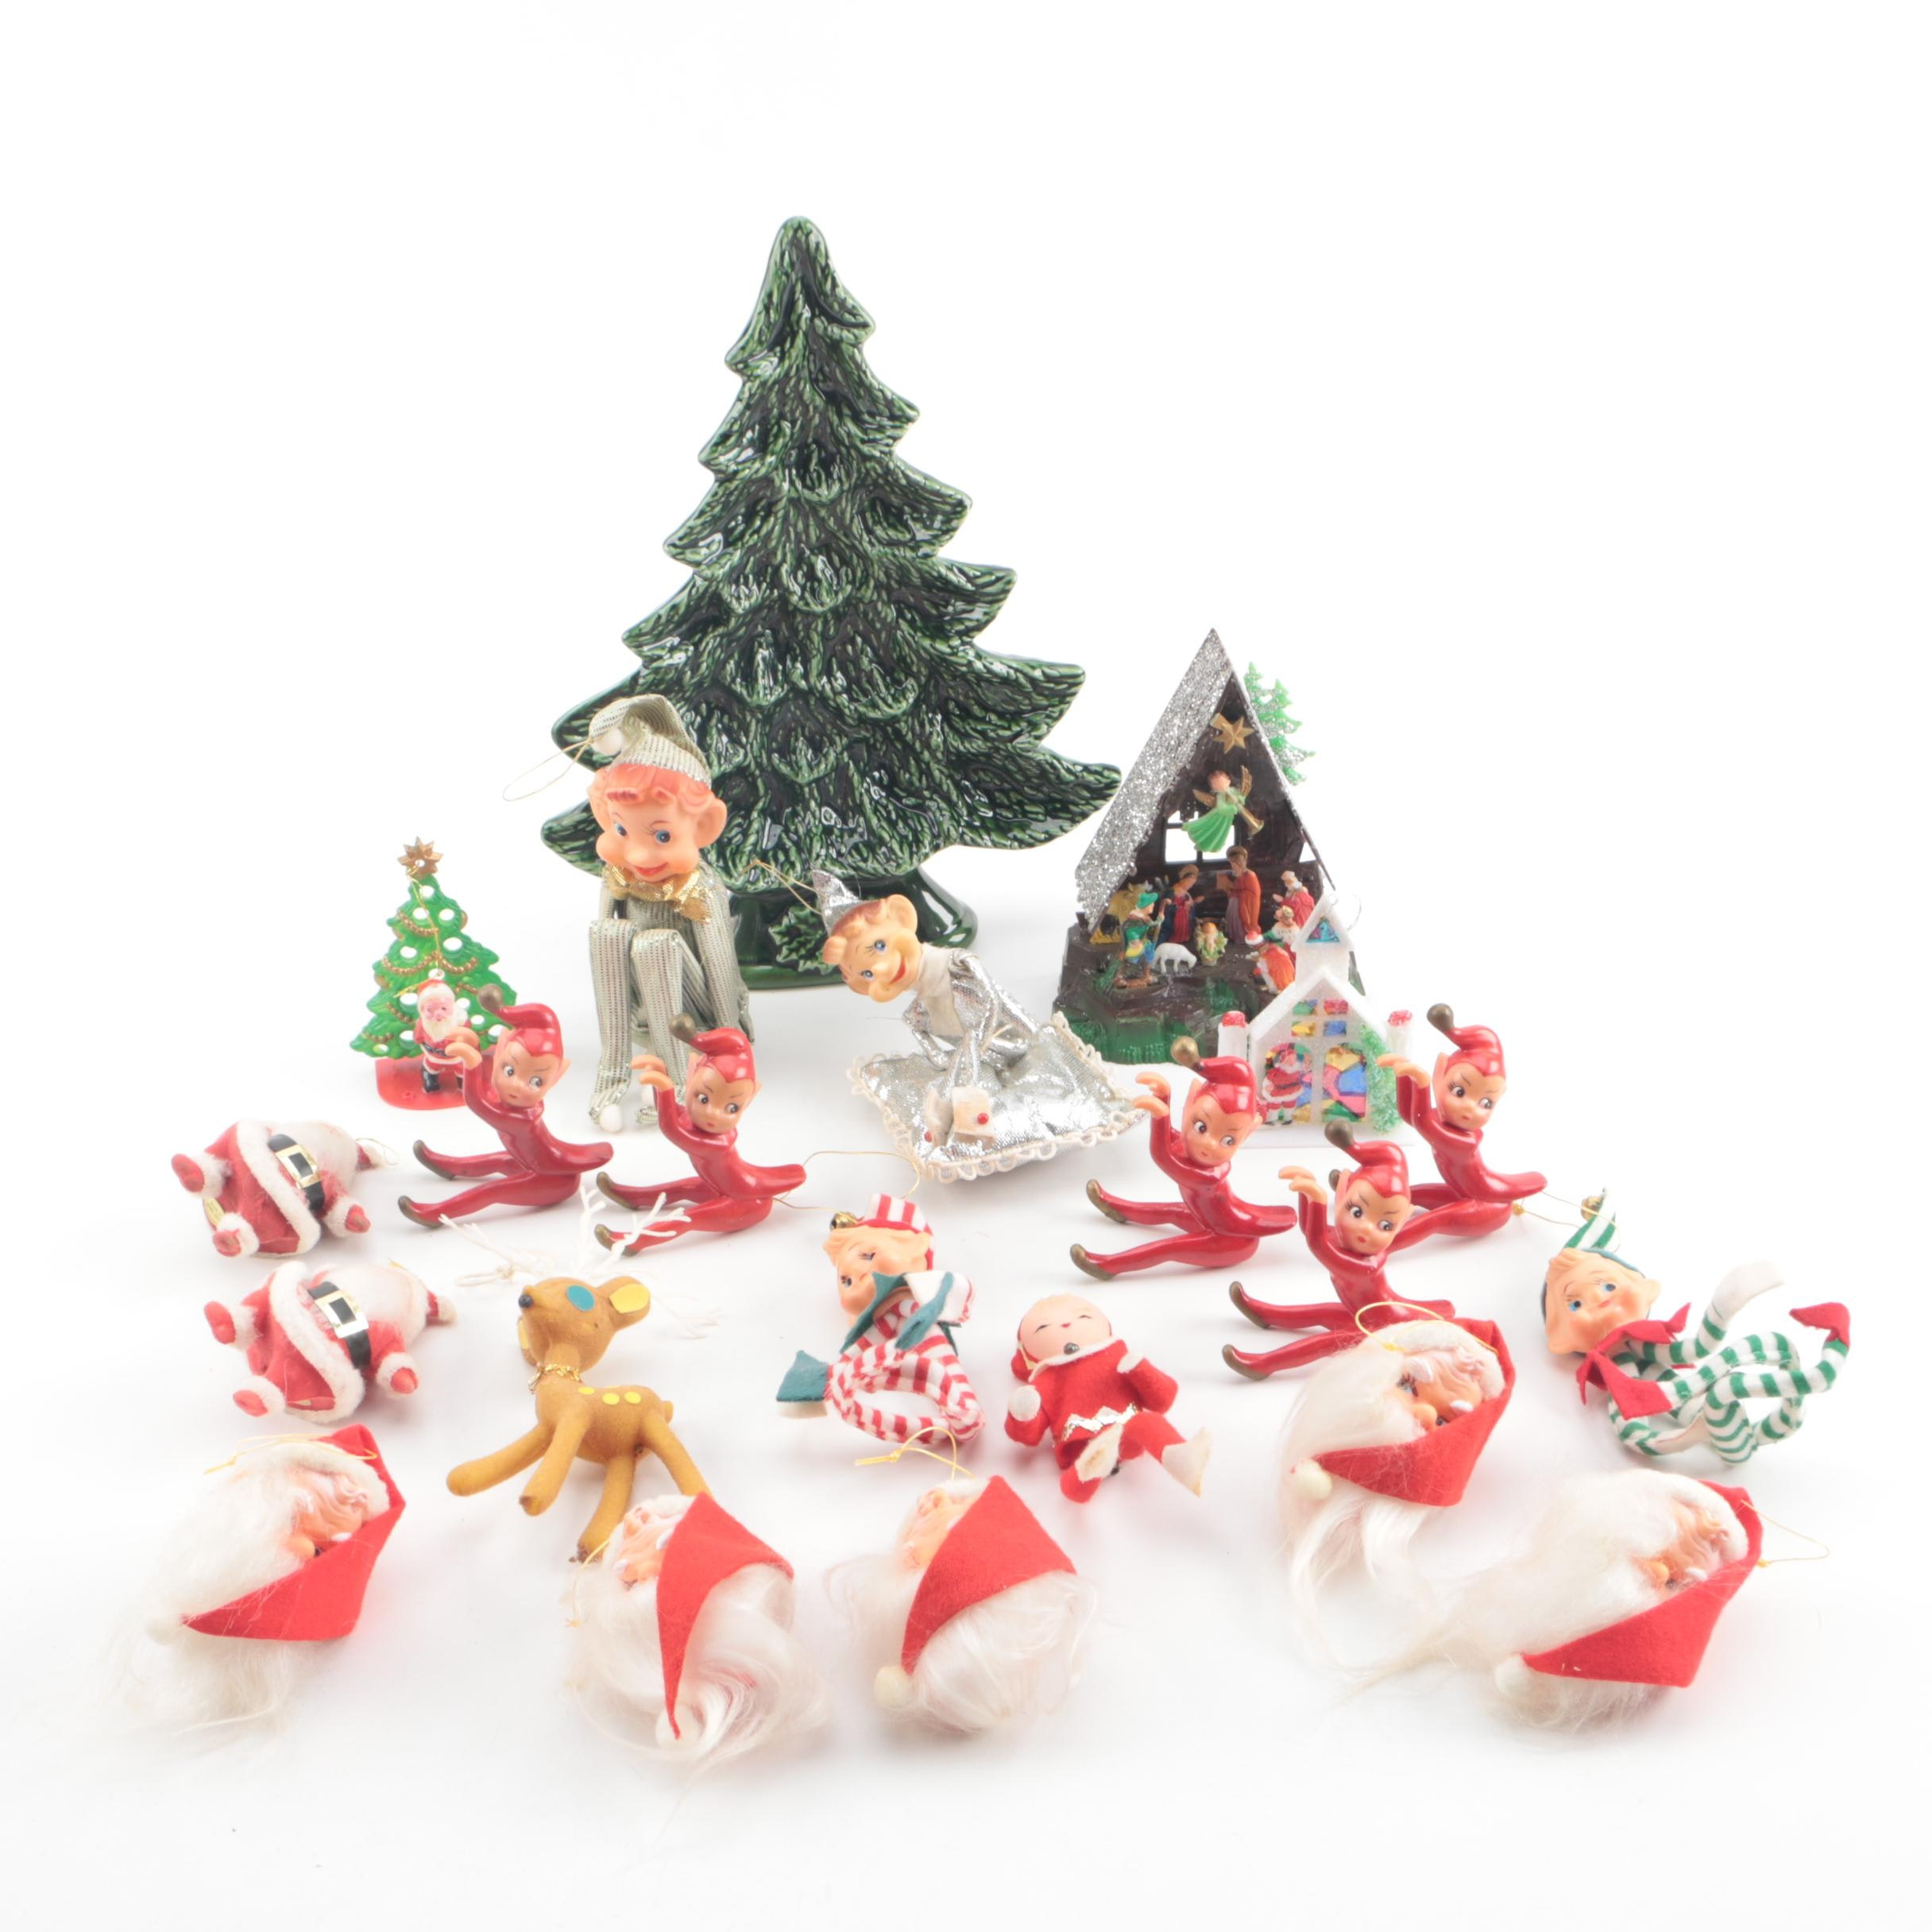 Mid Century Christmas Ornaments with Hand-Painted Ceramic Tree